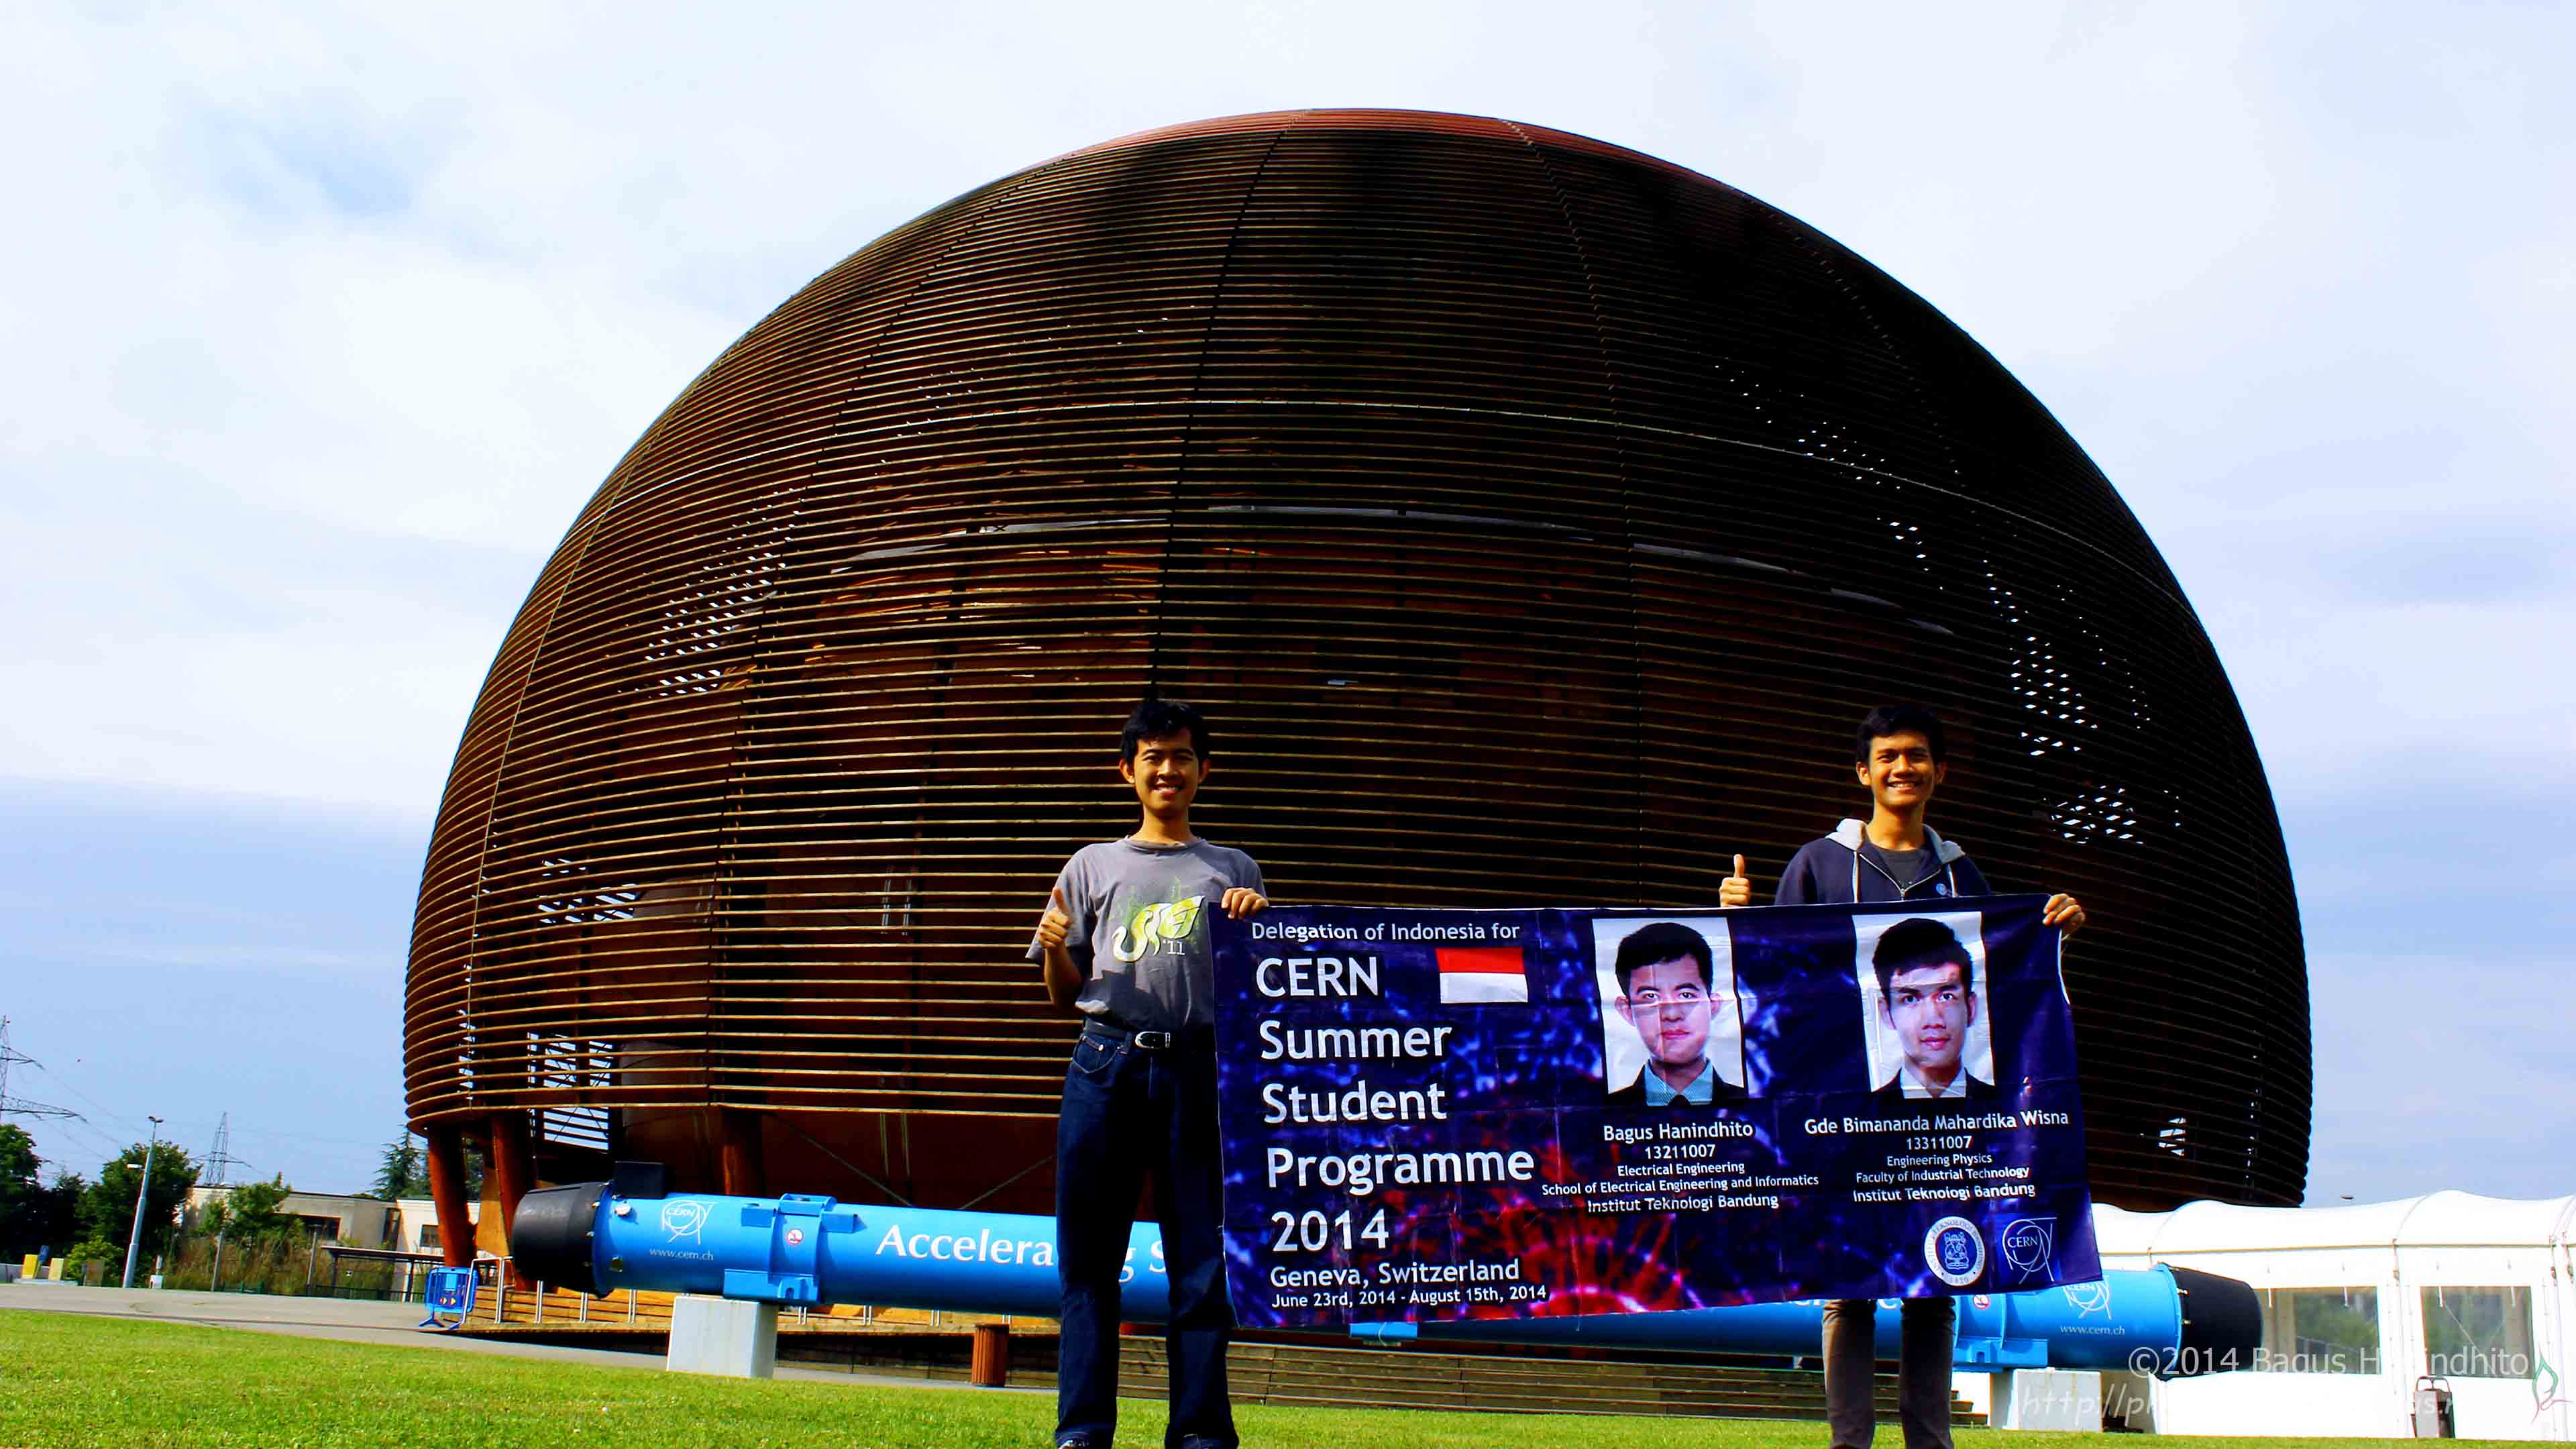 Indonesia Delegation for CERN Summer Student 2014, photographed in front of the Globe of Science and Innovation.